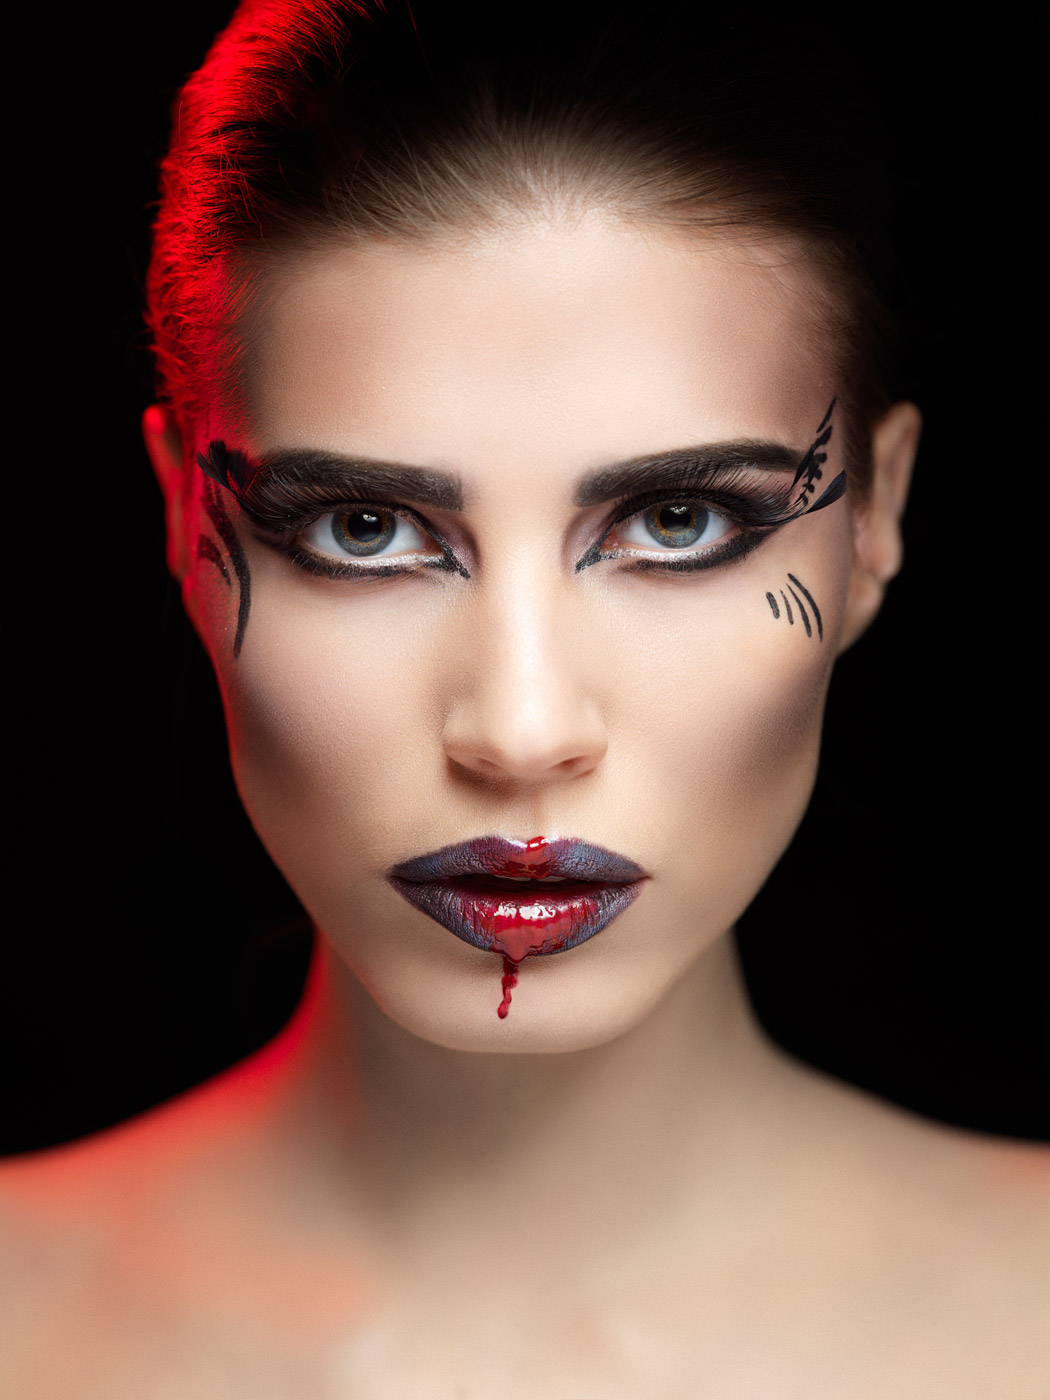 Beauty Portrait Of A Young Beautiful Teen Girl Stock: Bloody Lips Makeup / Beauty Portrait Photography